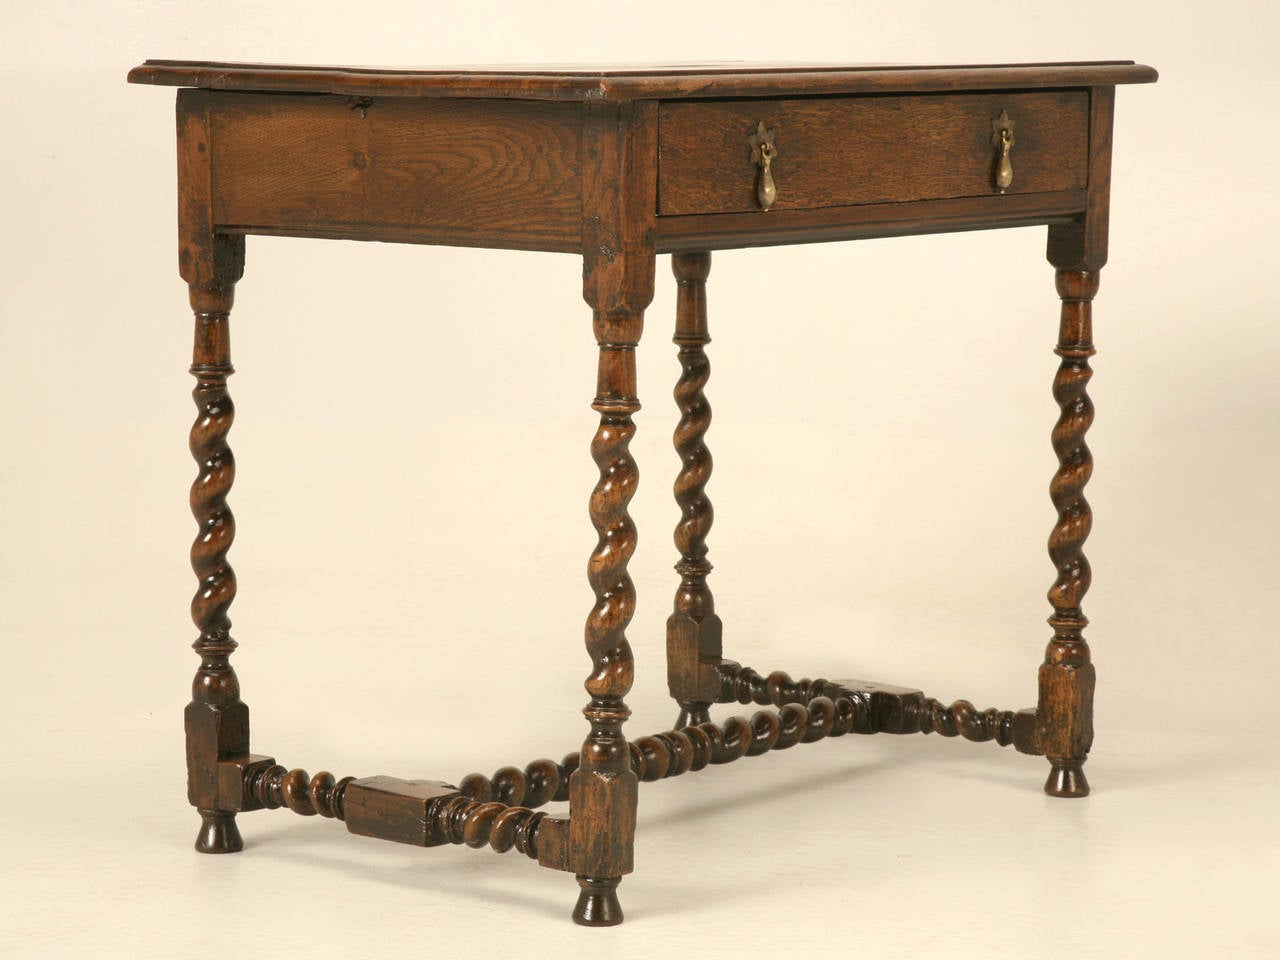 English Country Style Writing Desk or End Table, circa 1700s For Sale 1